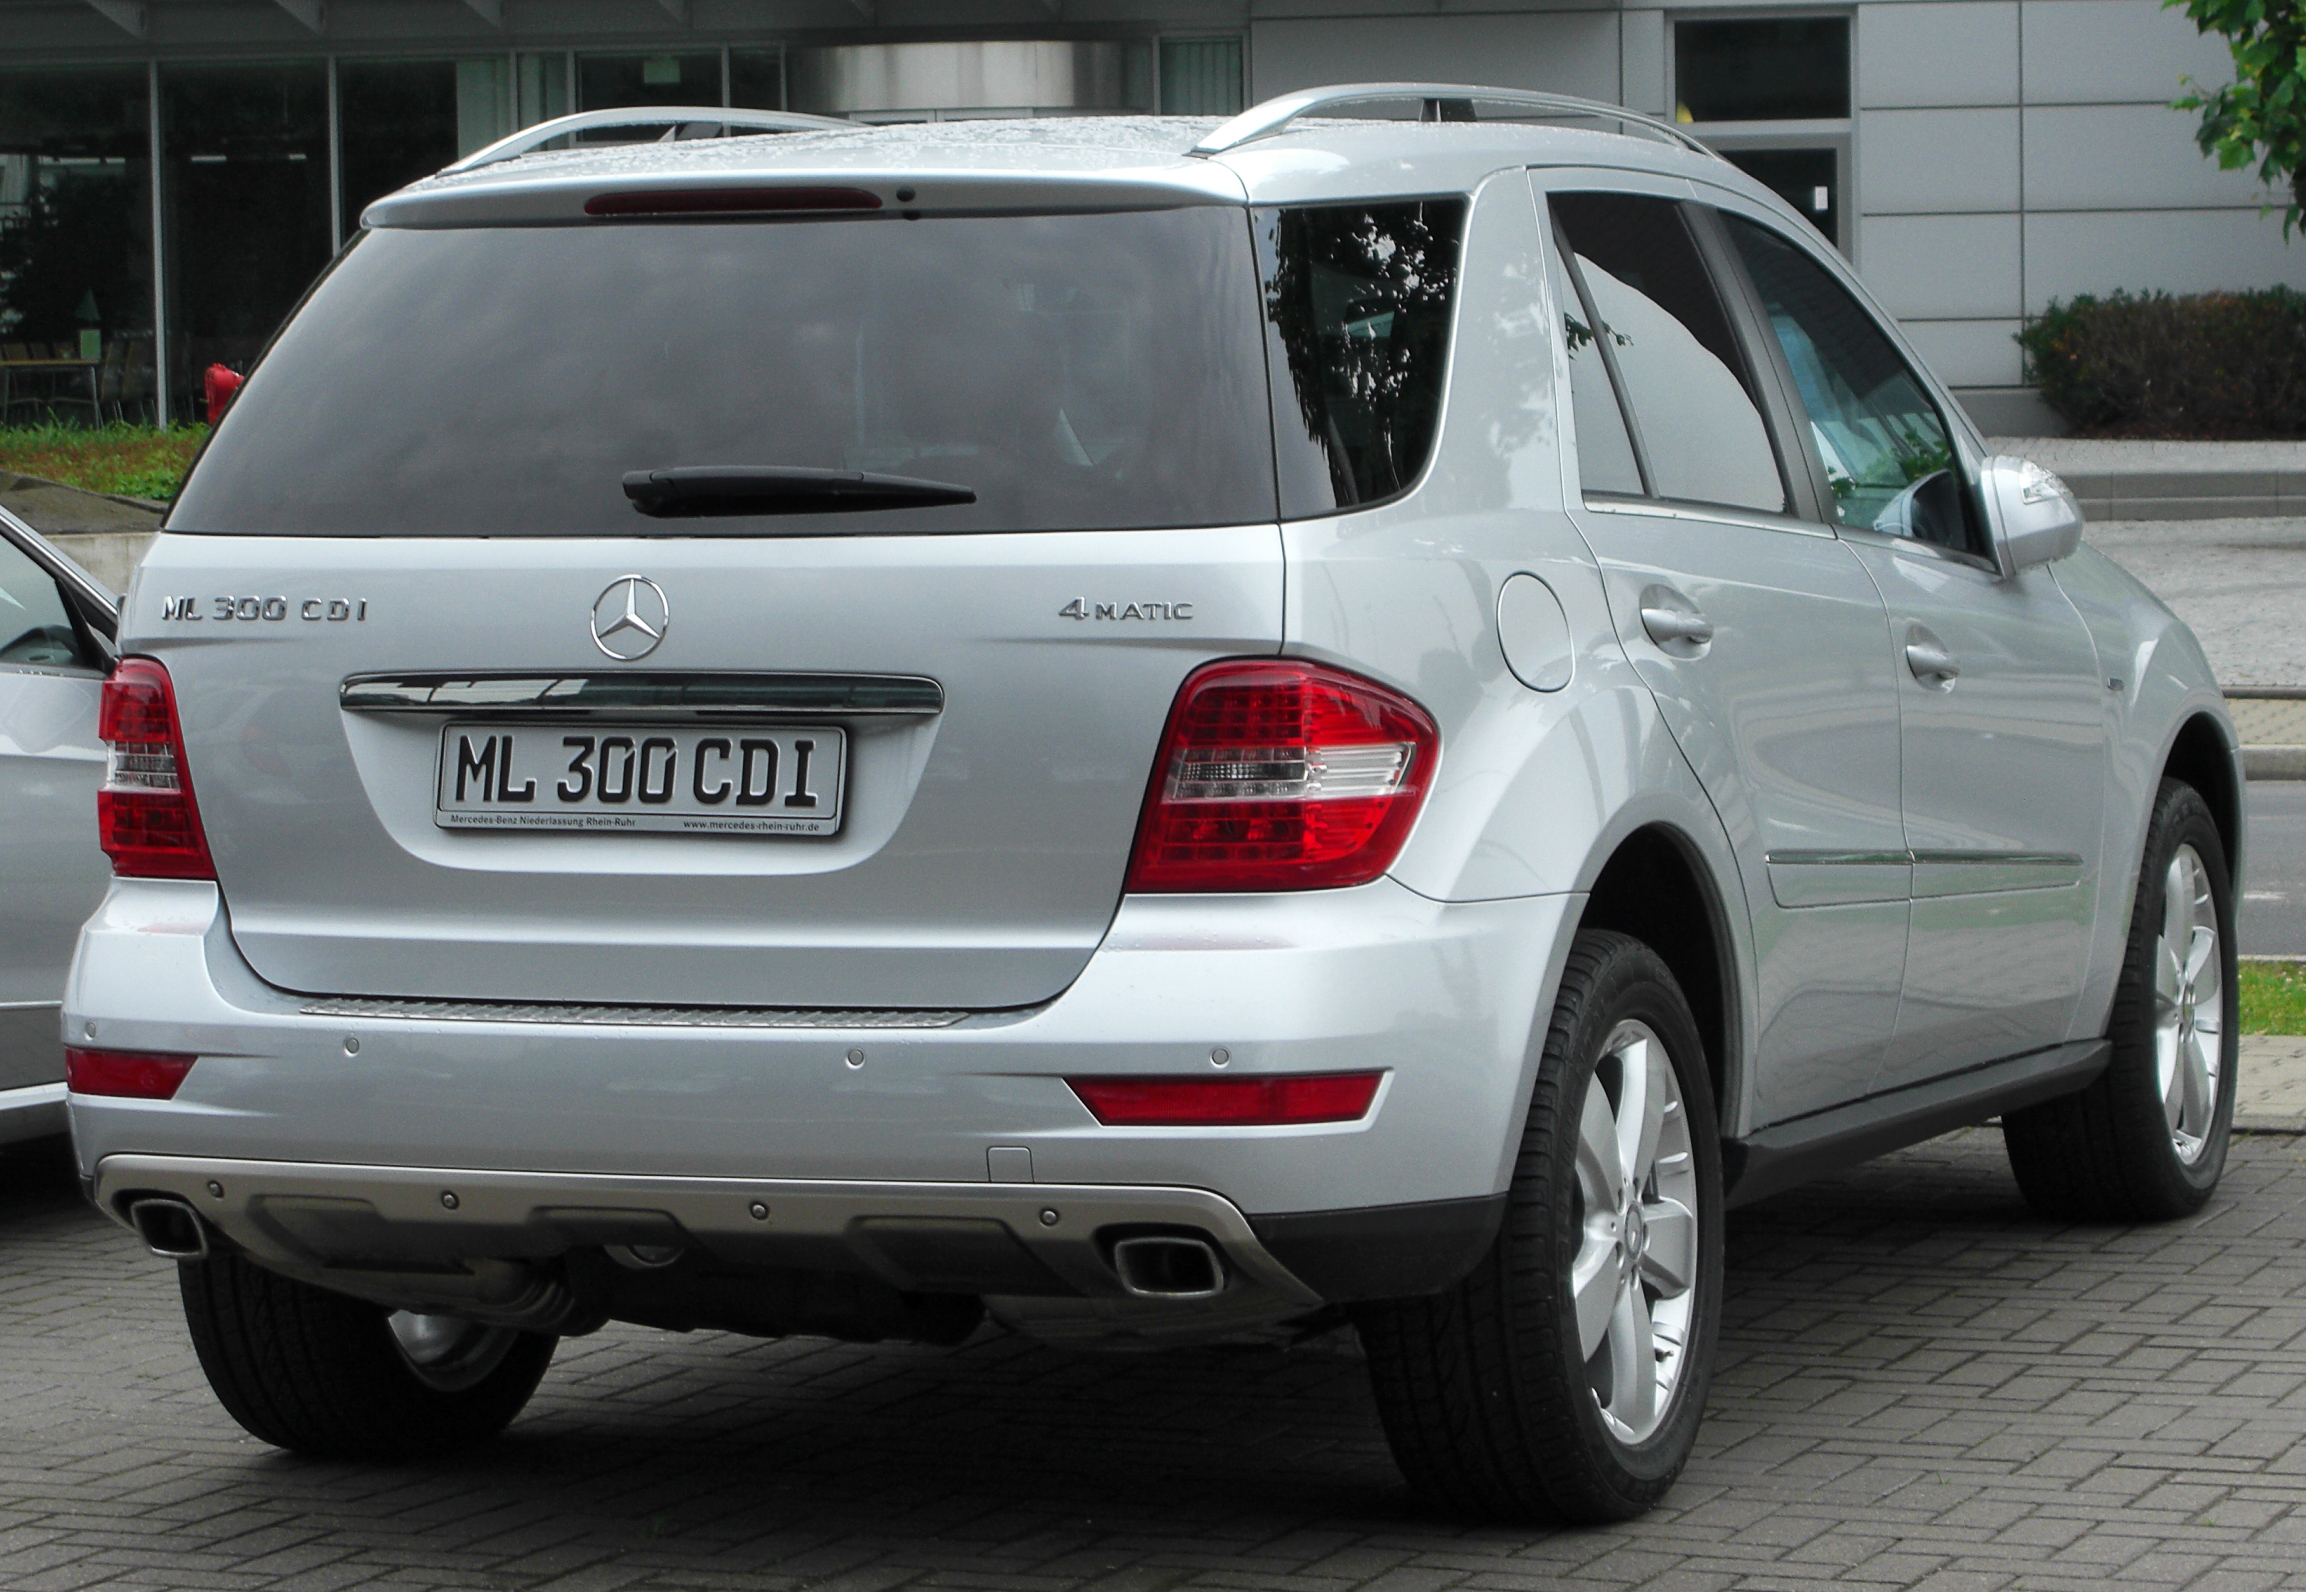 file mercedes ml 300 cdi blueefficiency w164 facelift rear wikimedia commons. Black Bedroom Furniture Sets. Home Design Ideas